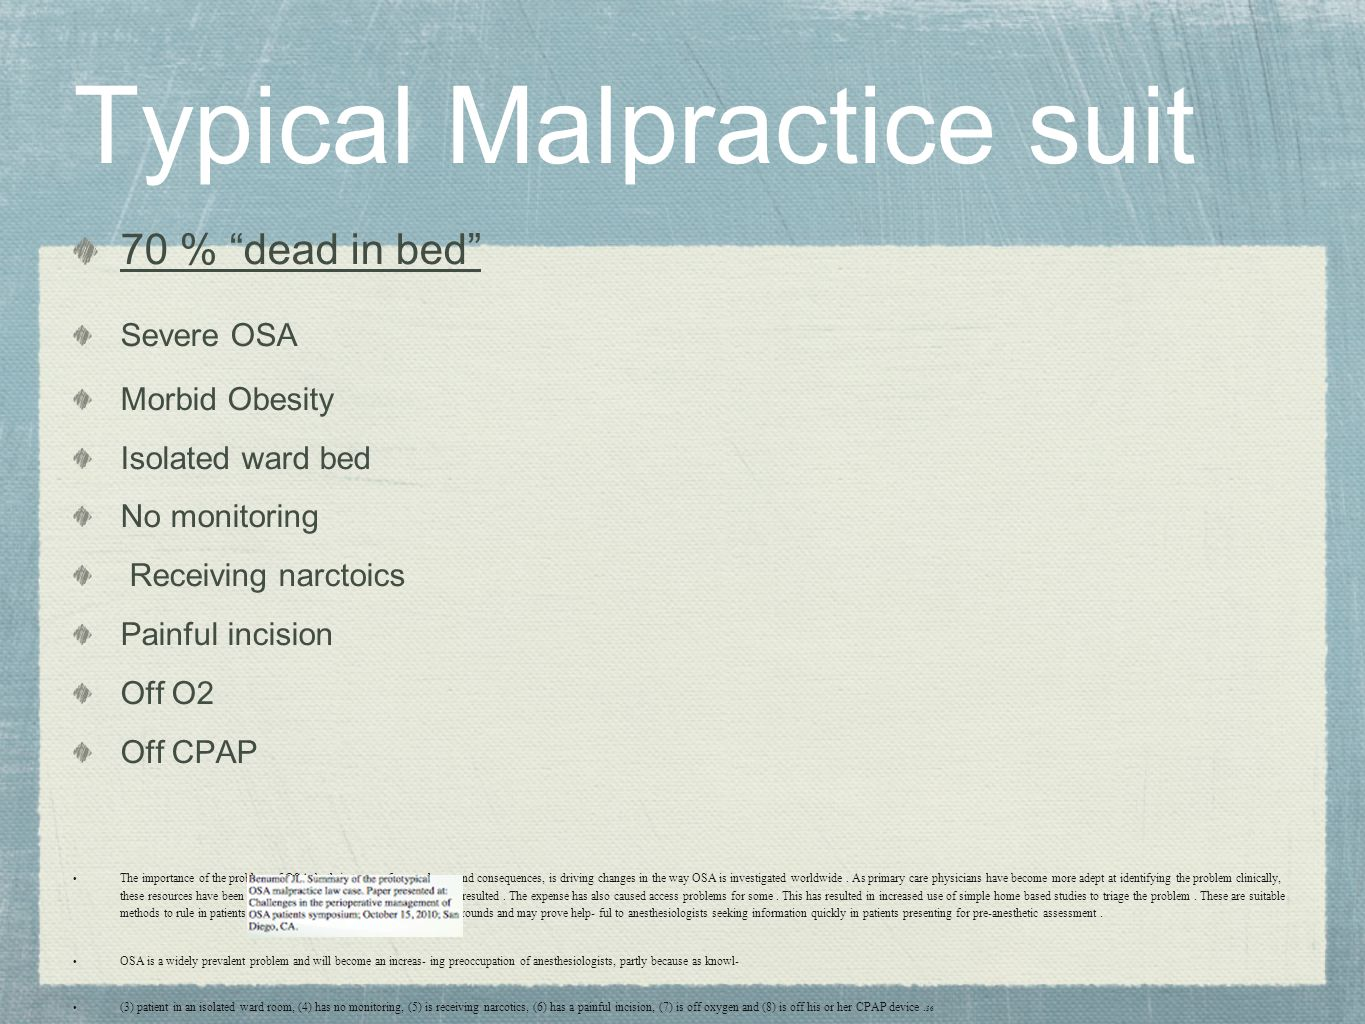 Typical Malpractice suit